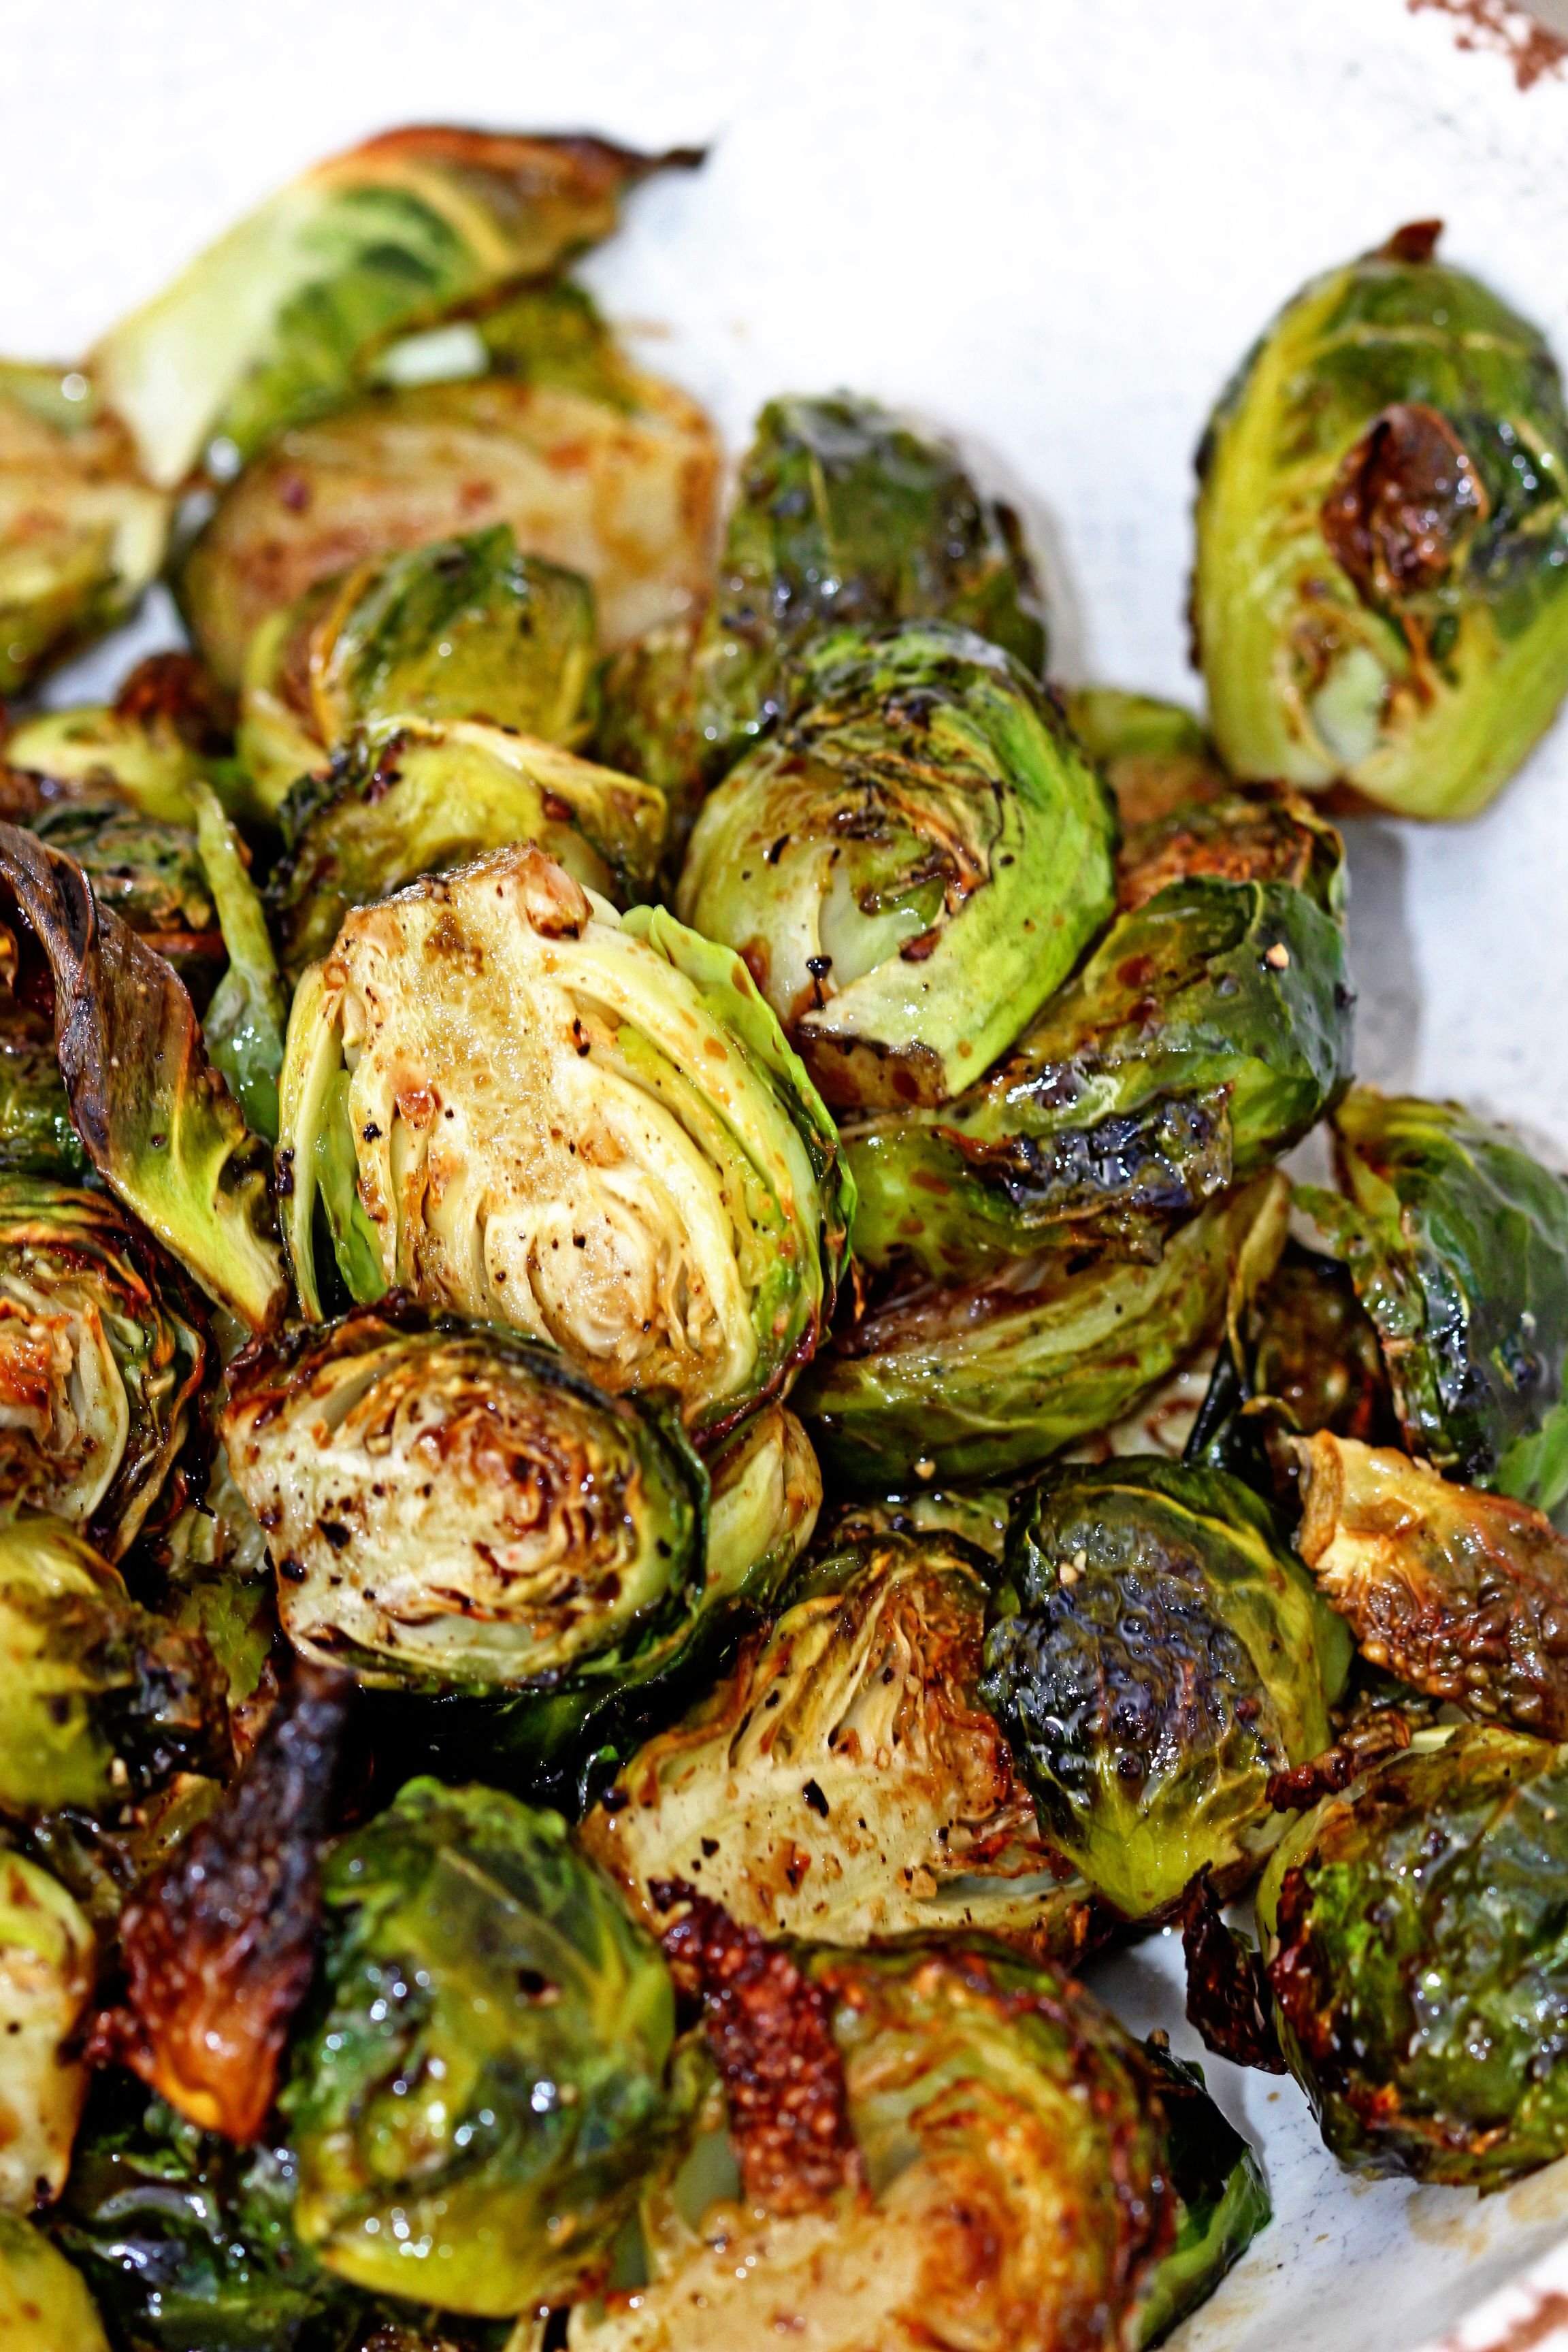 Roasted Brussels Sprouts4 Sprout Recipes